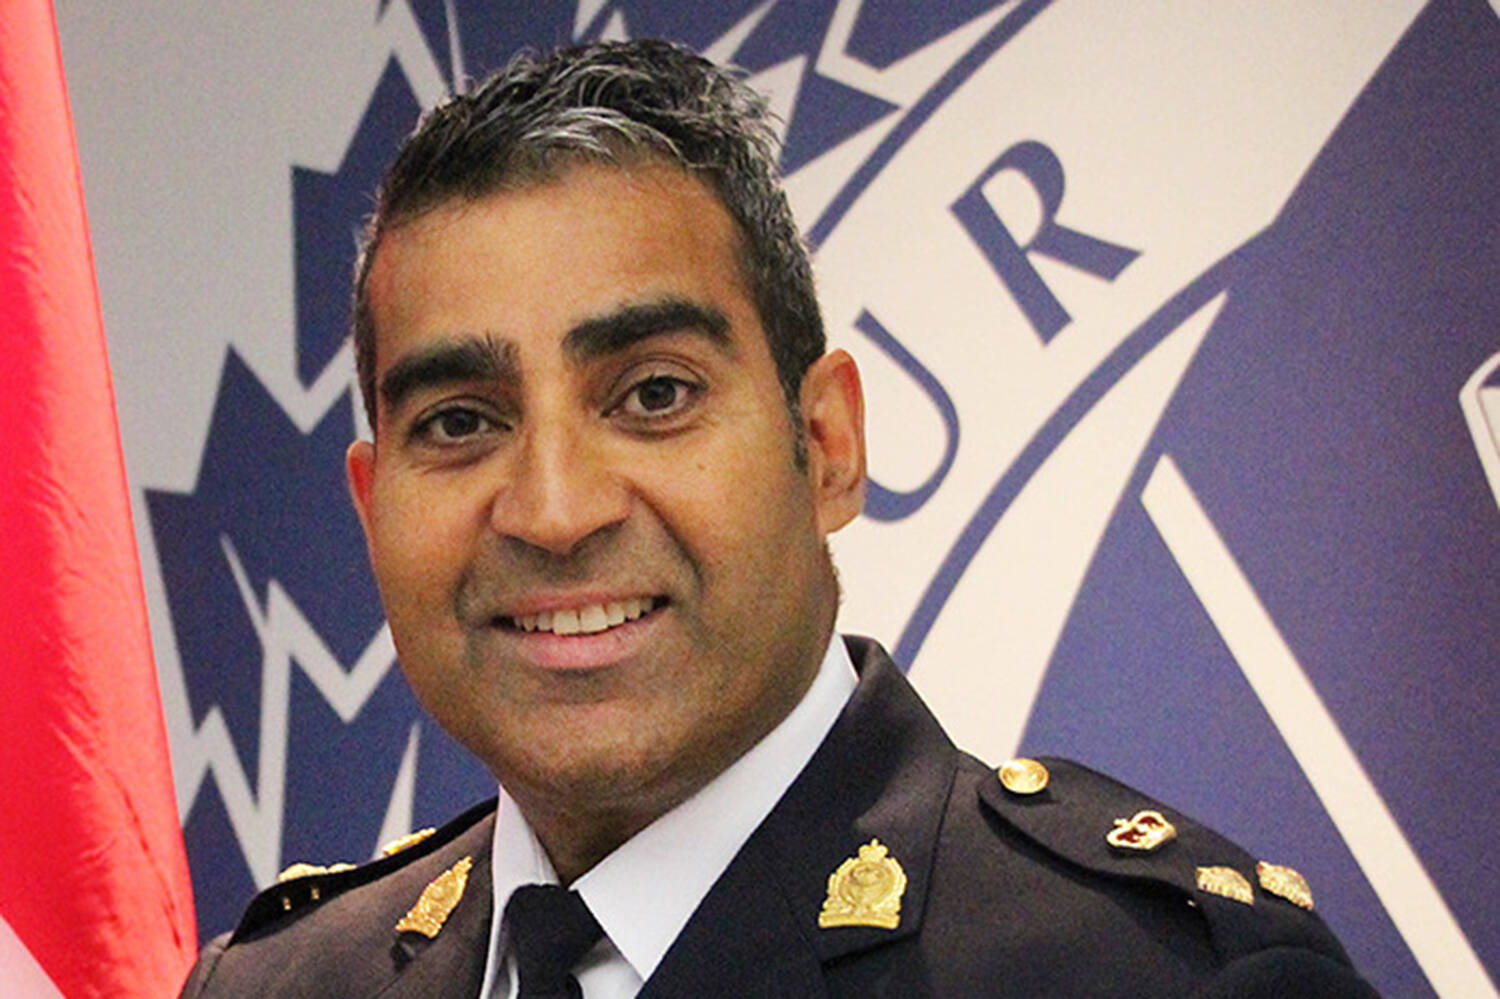 Victoria Police Department (VicPD) Chief Del Manak said he is still processing an incident Saturday afternoon during which a woman poured liquid on him from behind. (Black Press Media file)